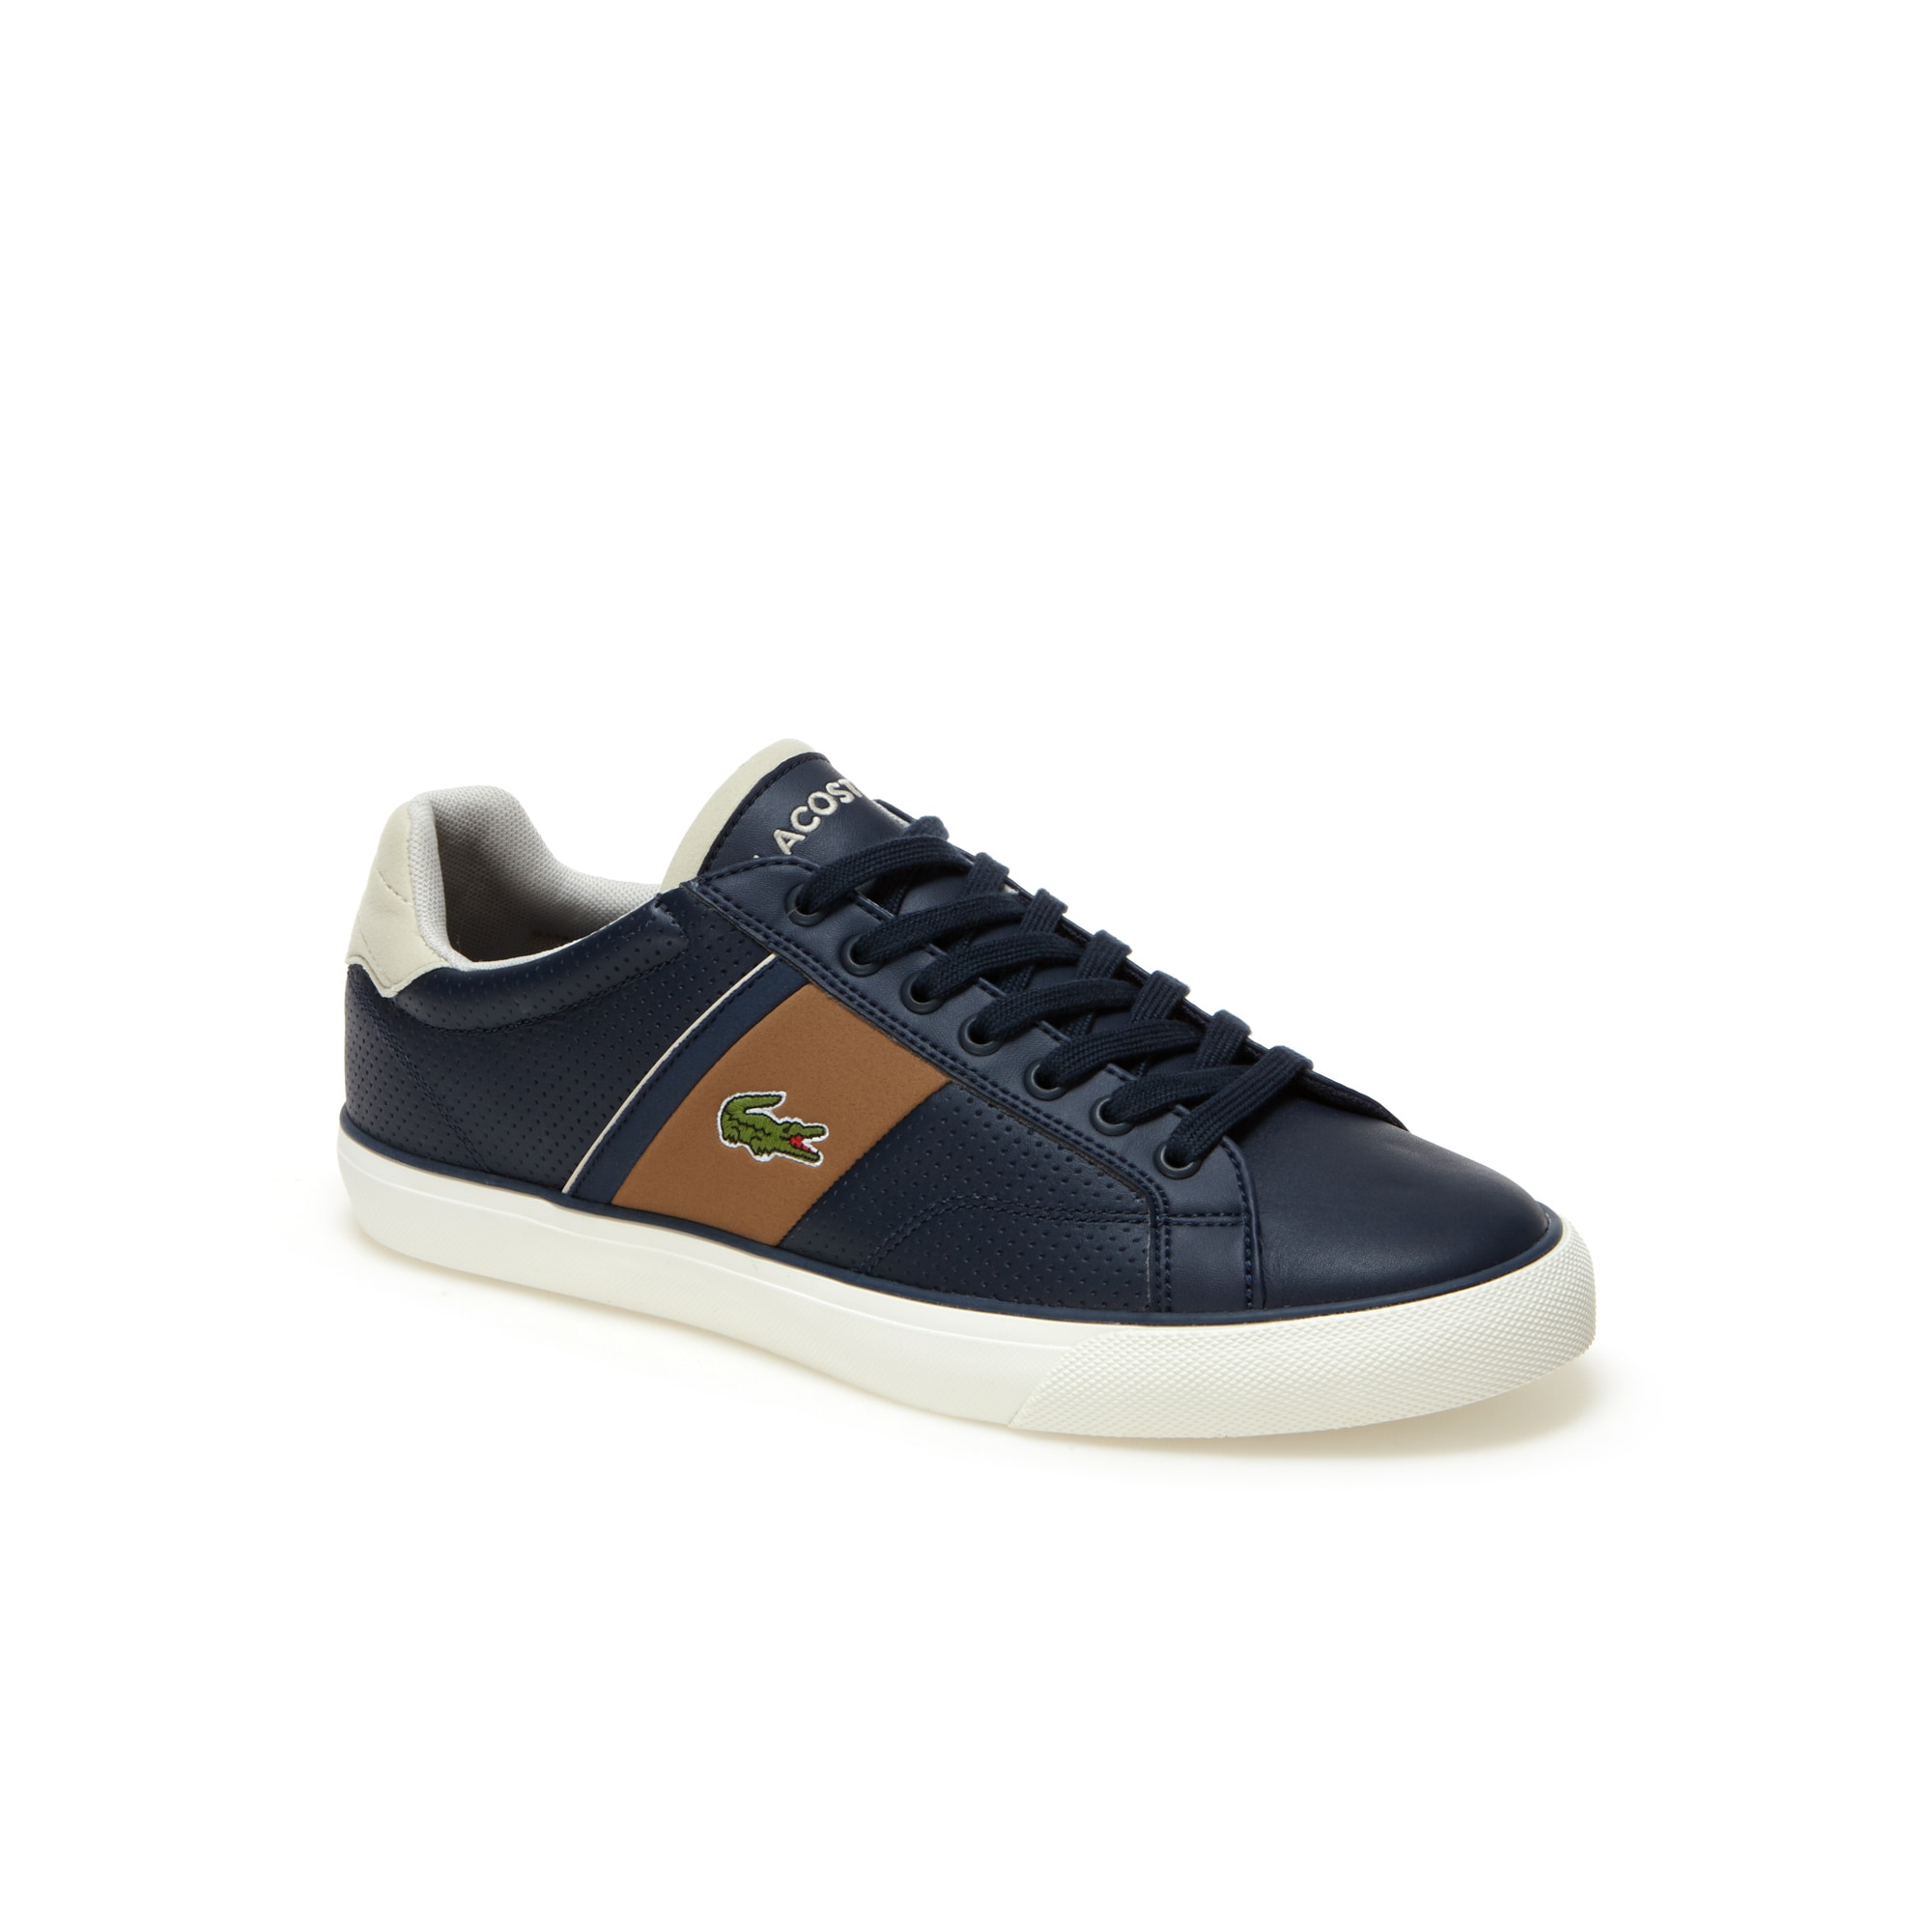 Men's Fairlead Leather Trainers